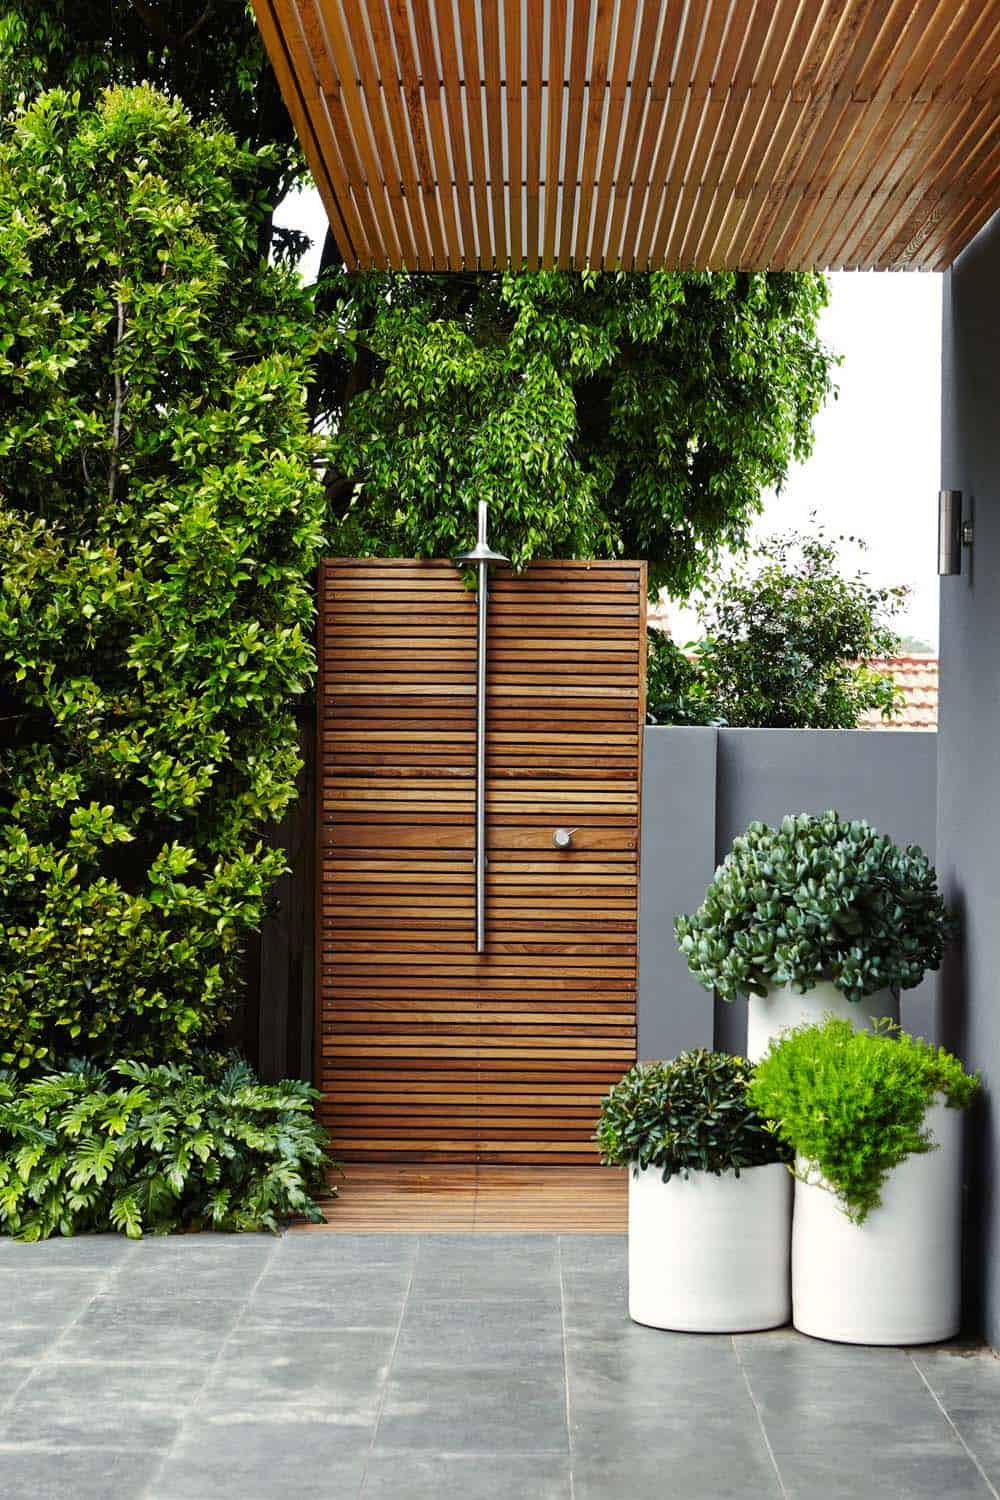 Outdoor Shower Design Ideas-41-1 Kindesign